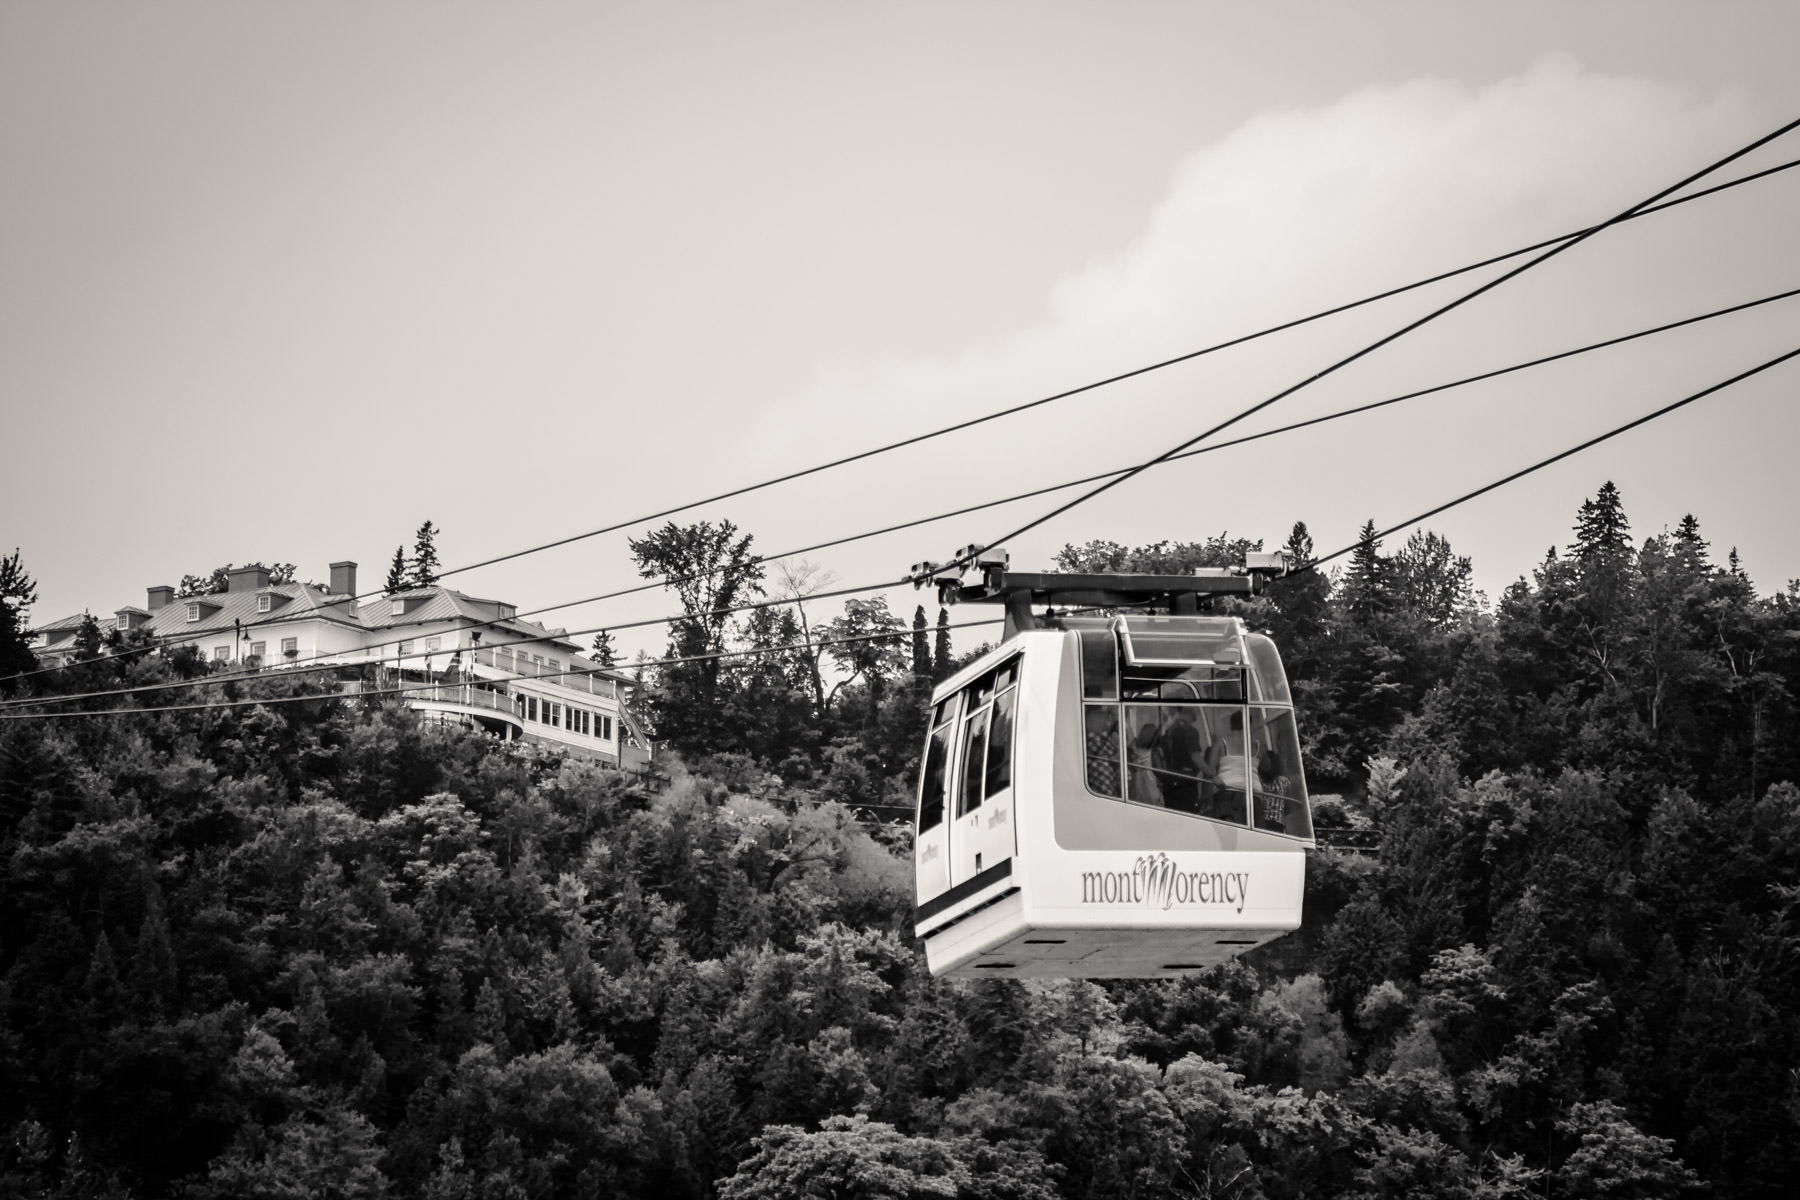 A cable car carries tourists to the top of Québec's Montmorency Falls.